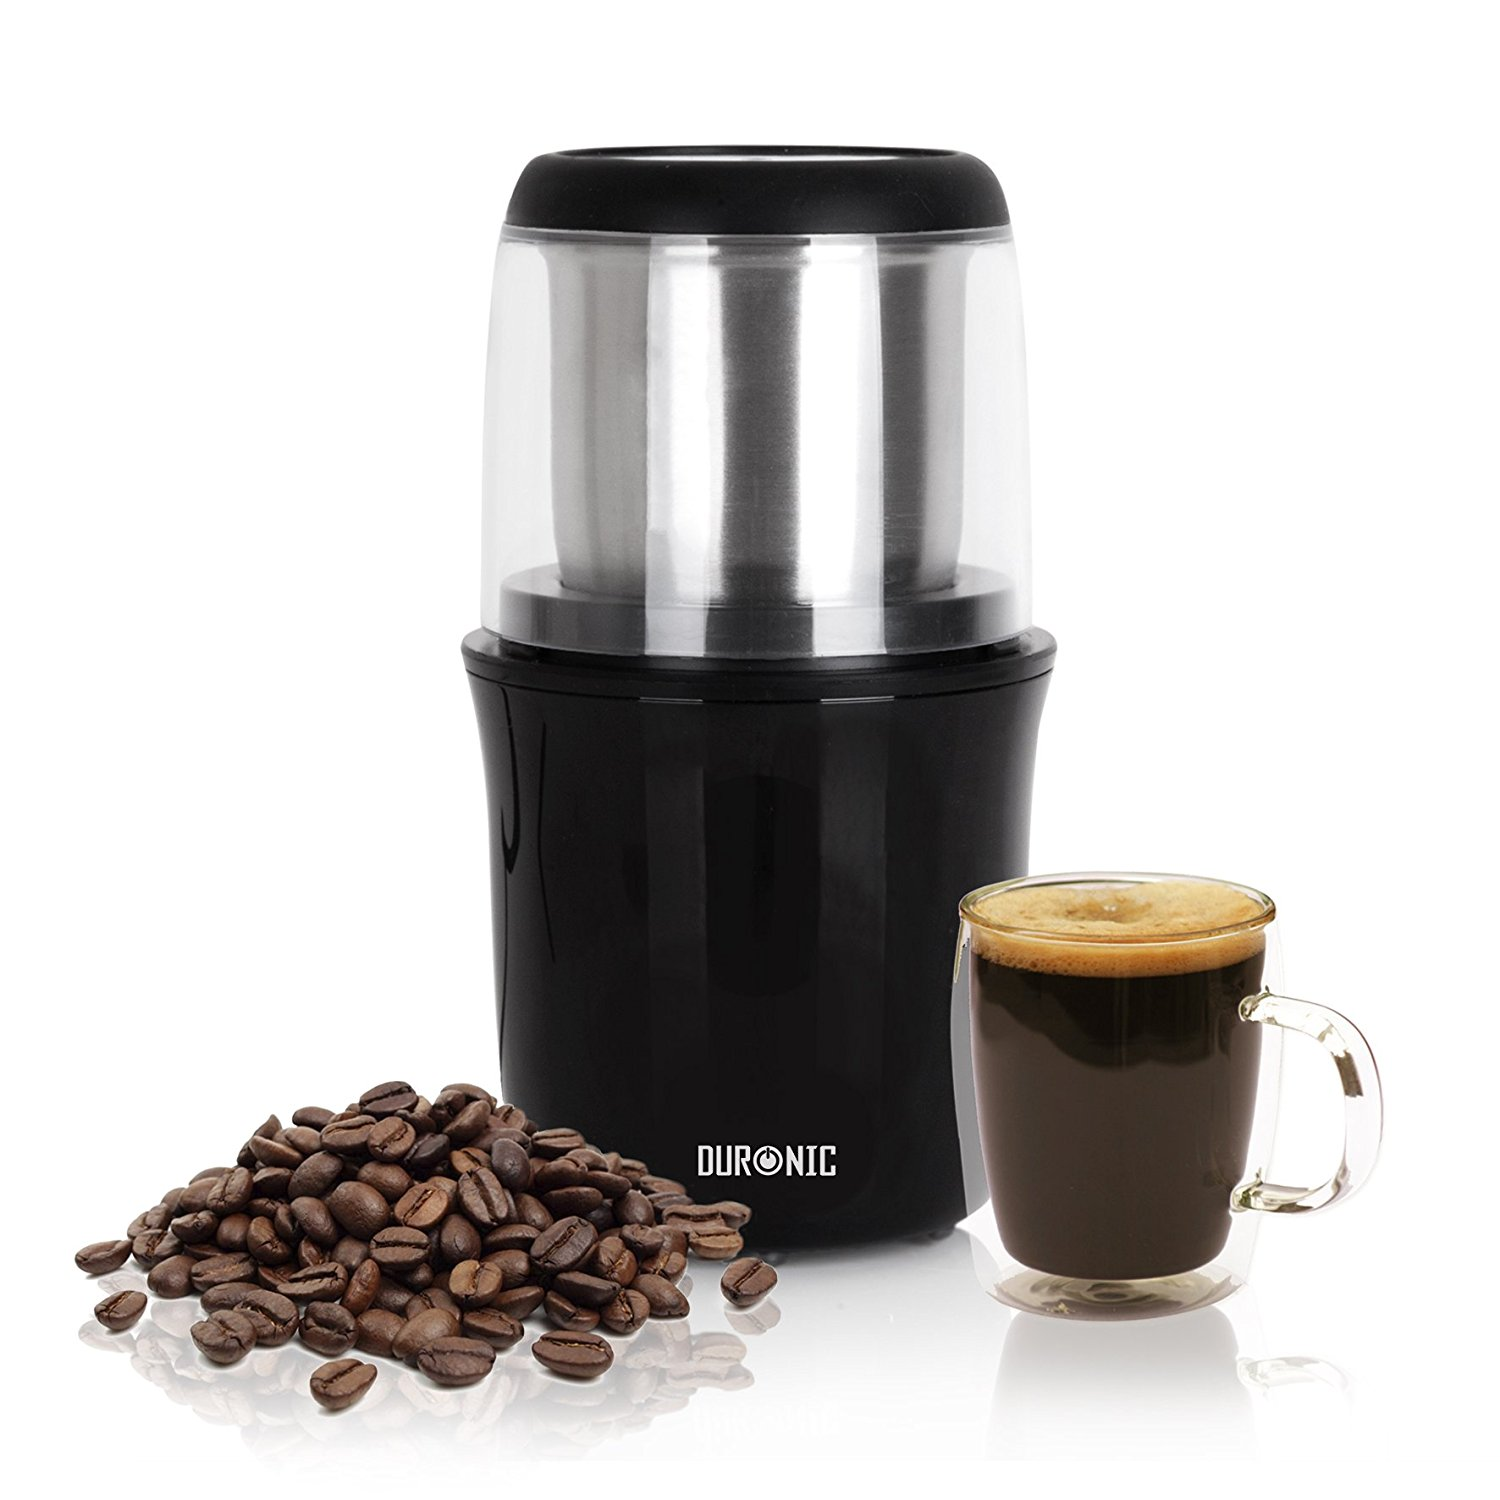 Duronic Electric Coffee Grinder